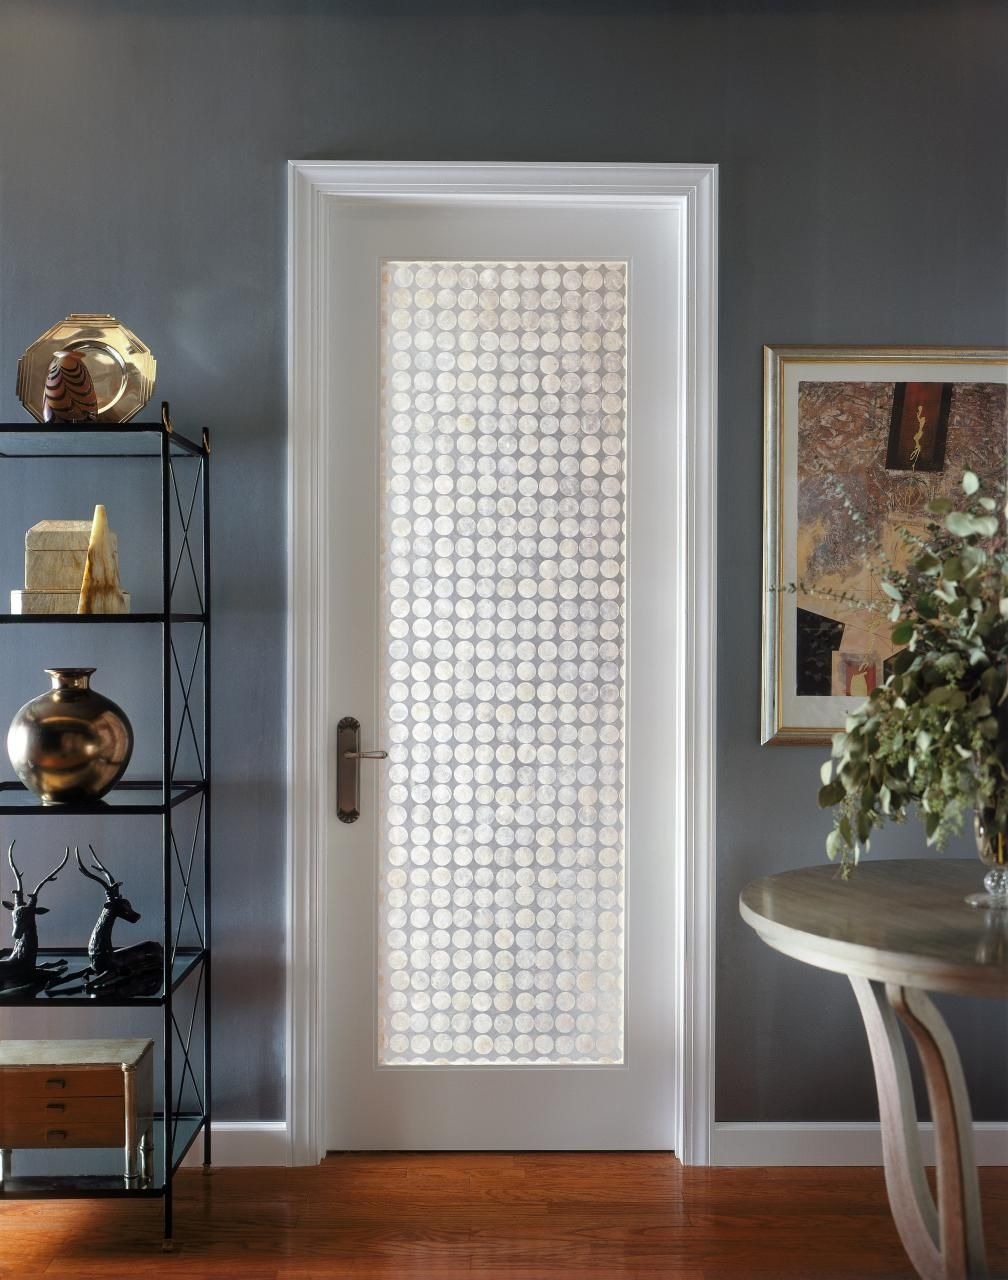 Manufacturer Of High Quality Interior And Exterior Mdf Wood Glass Doors For Residential Commercial Use